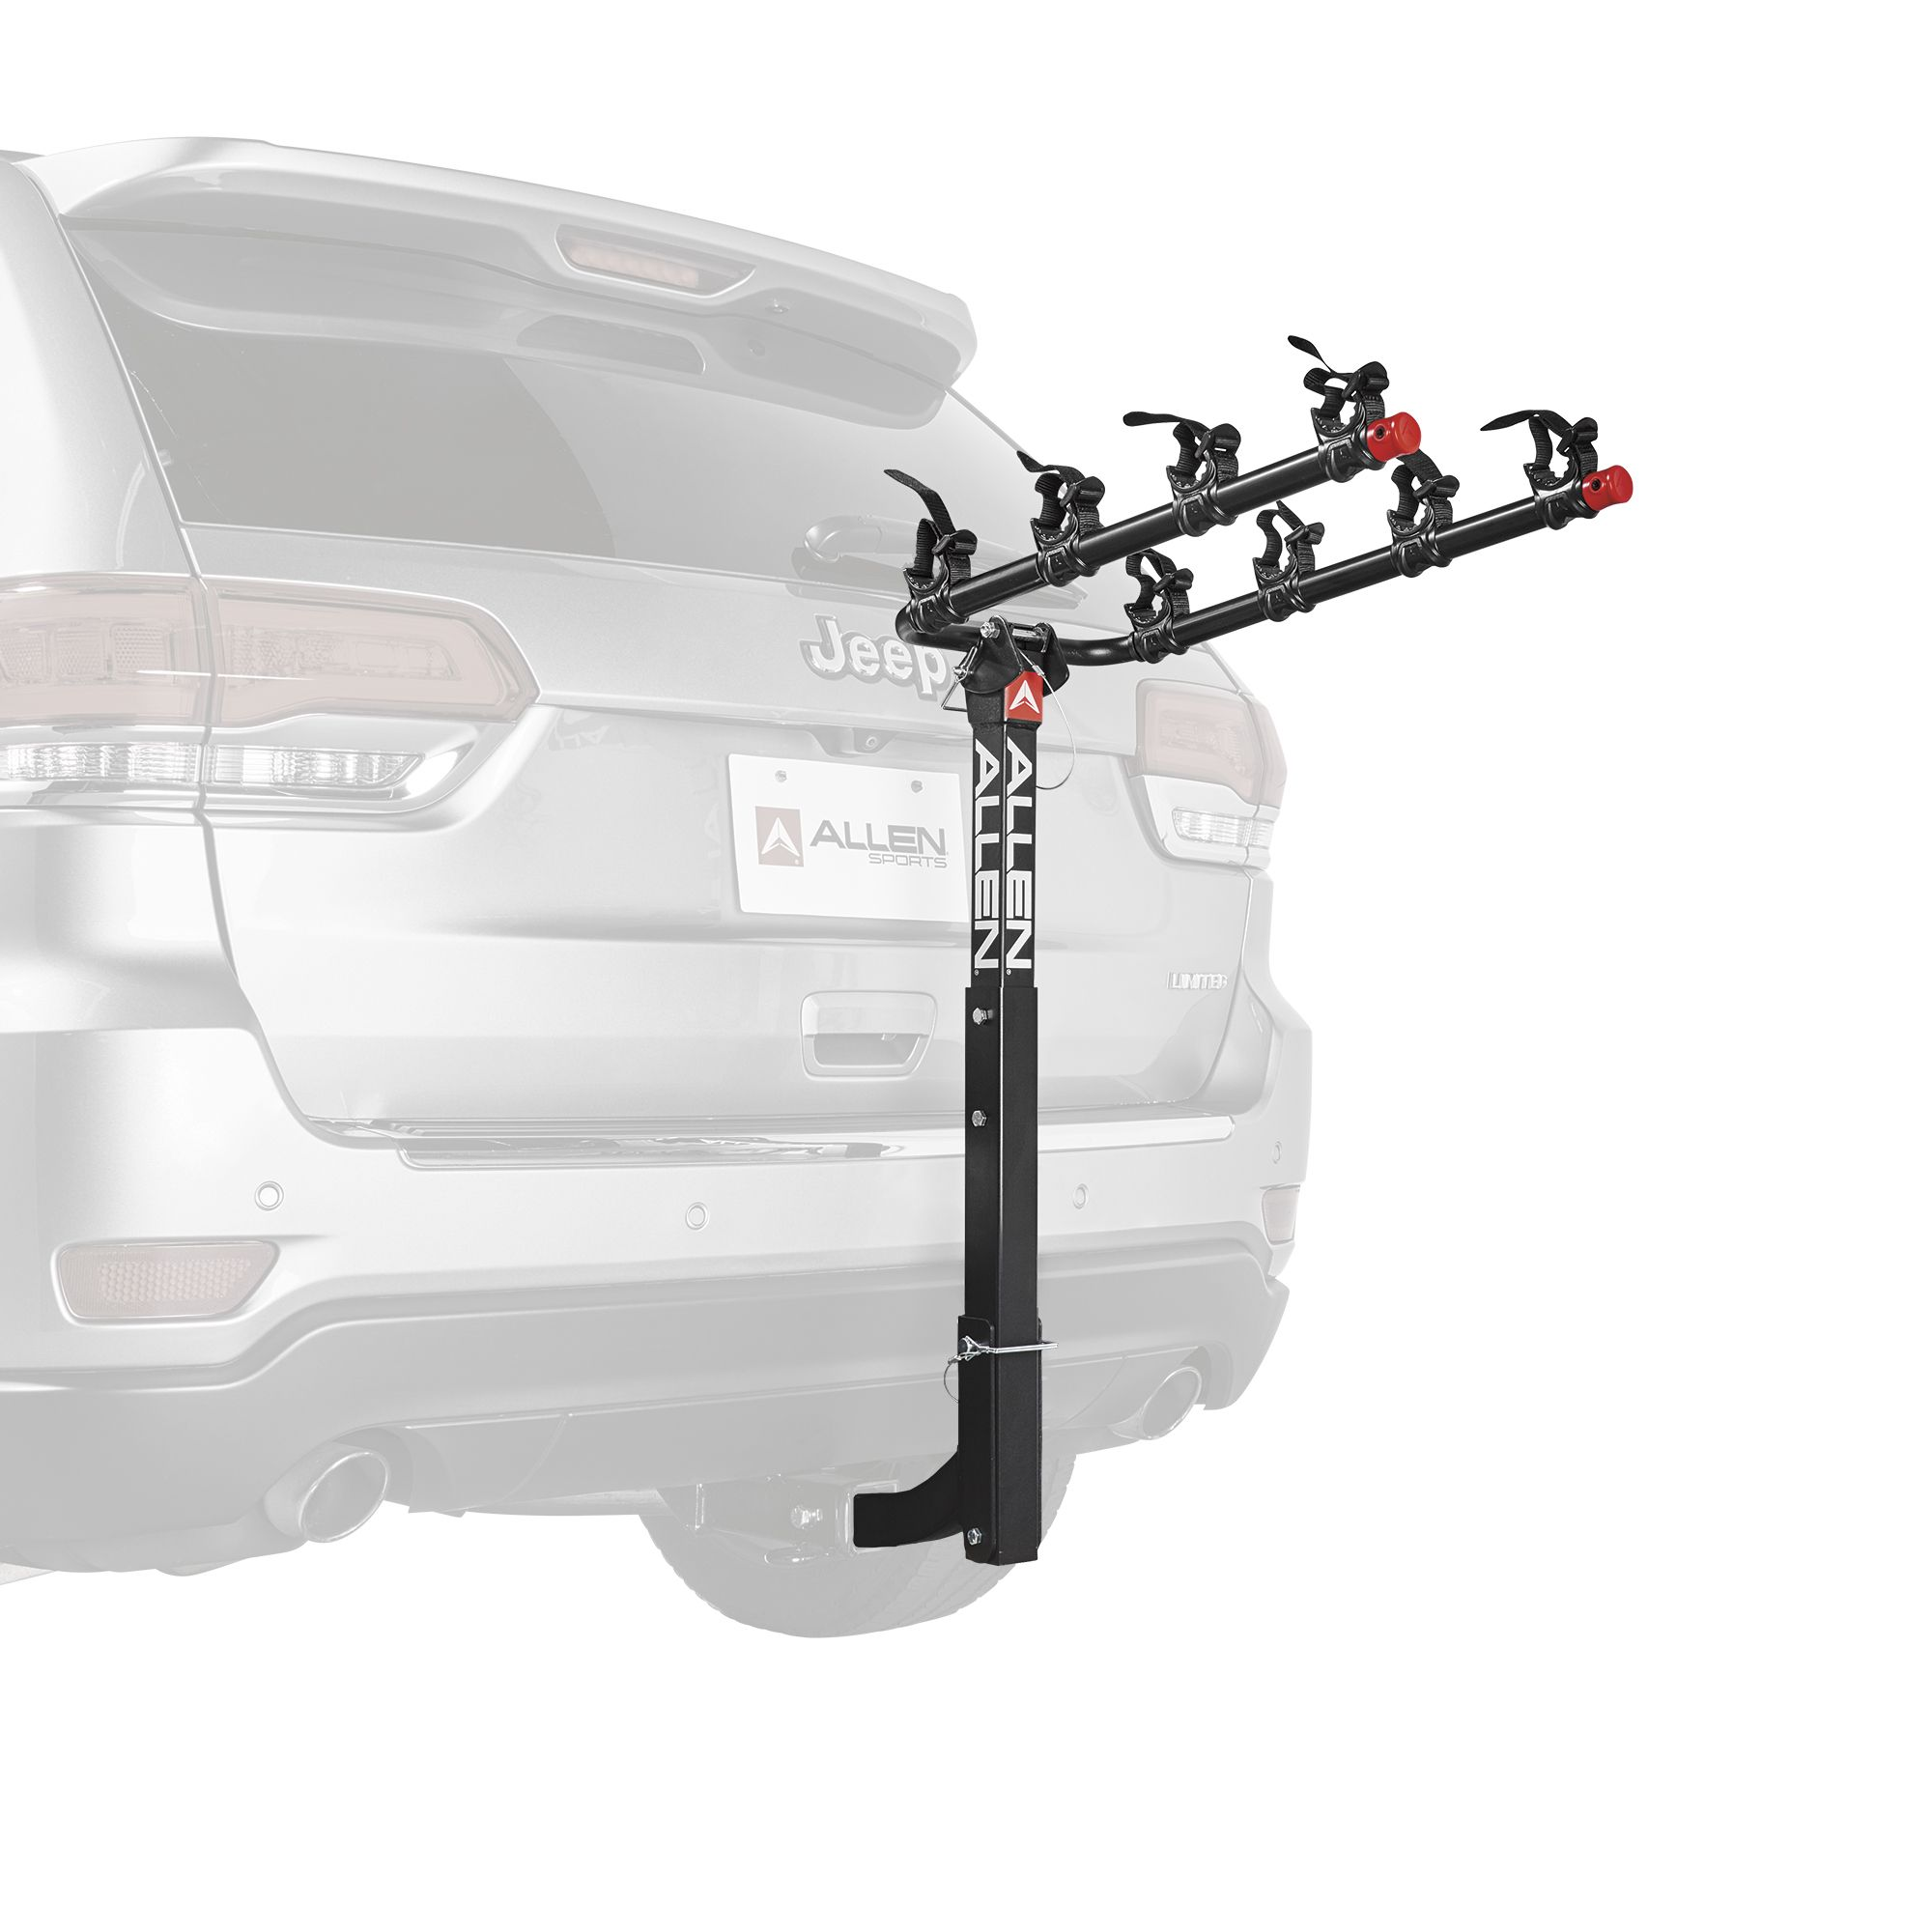 Allen Sports Deluxe 2 Bike Storage Mount Carrier Rack for Rear Car Trunk Used